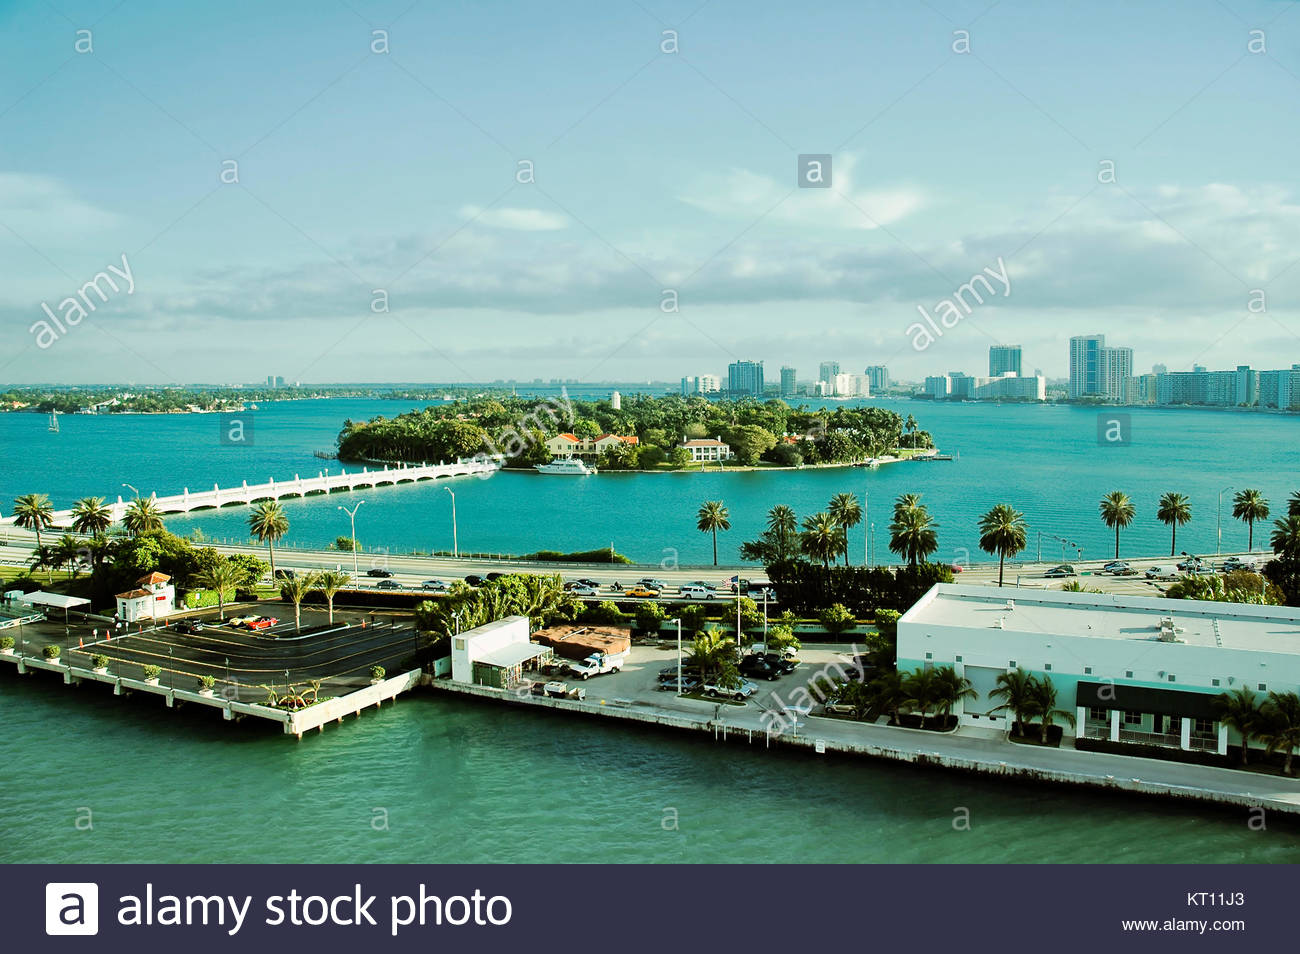 Aerial view of Star island in South Beach Neighborhood Of Miami - Stock Image